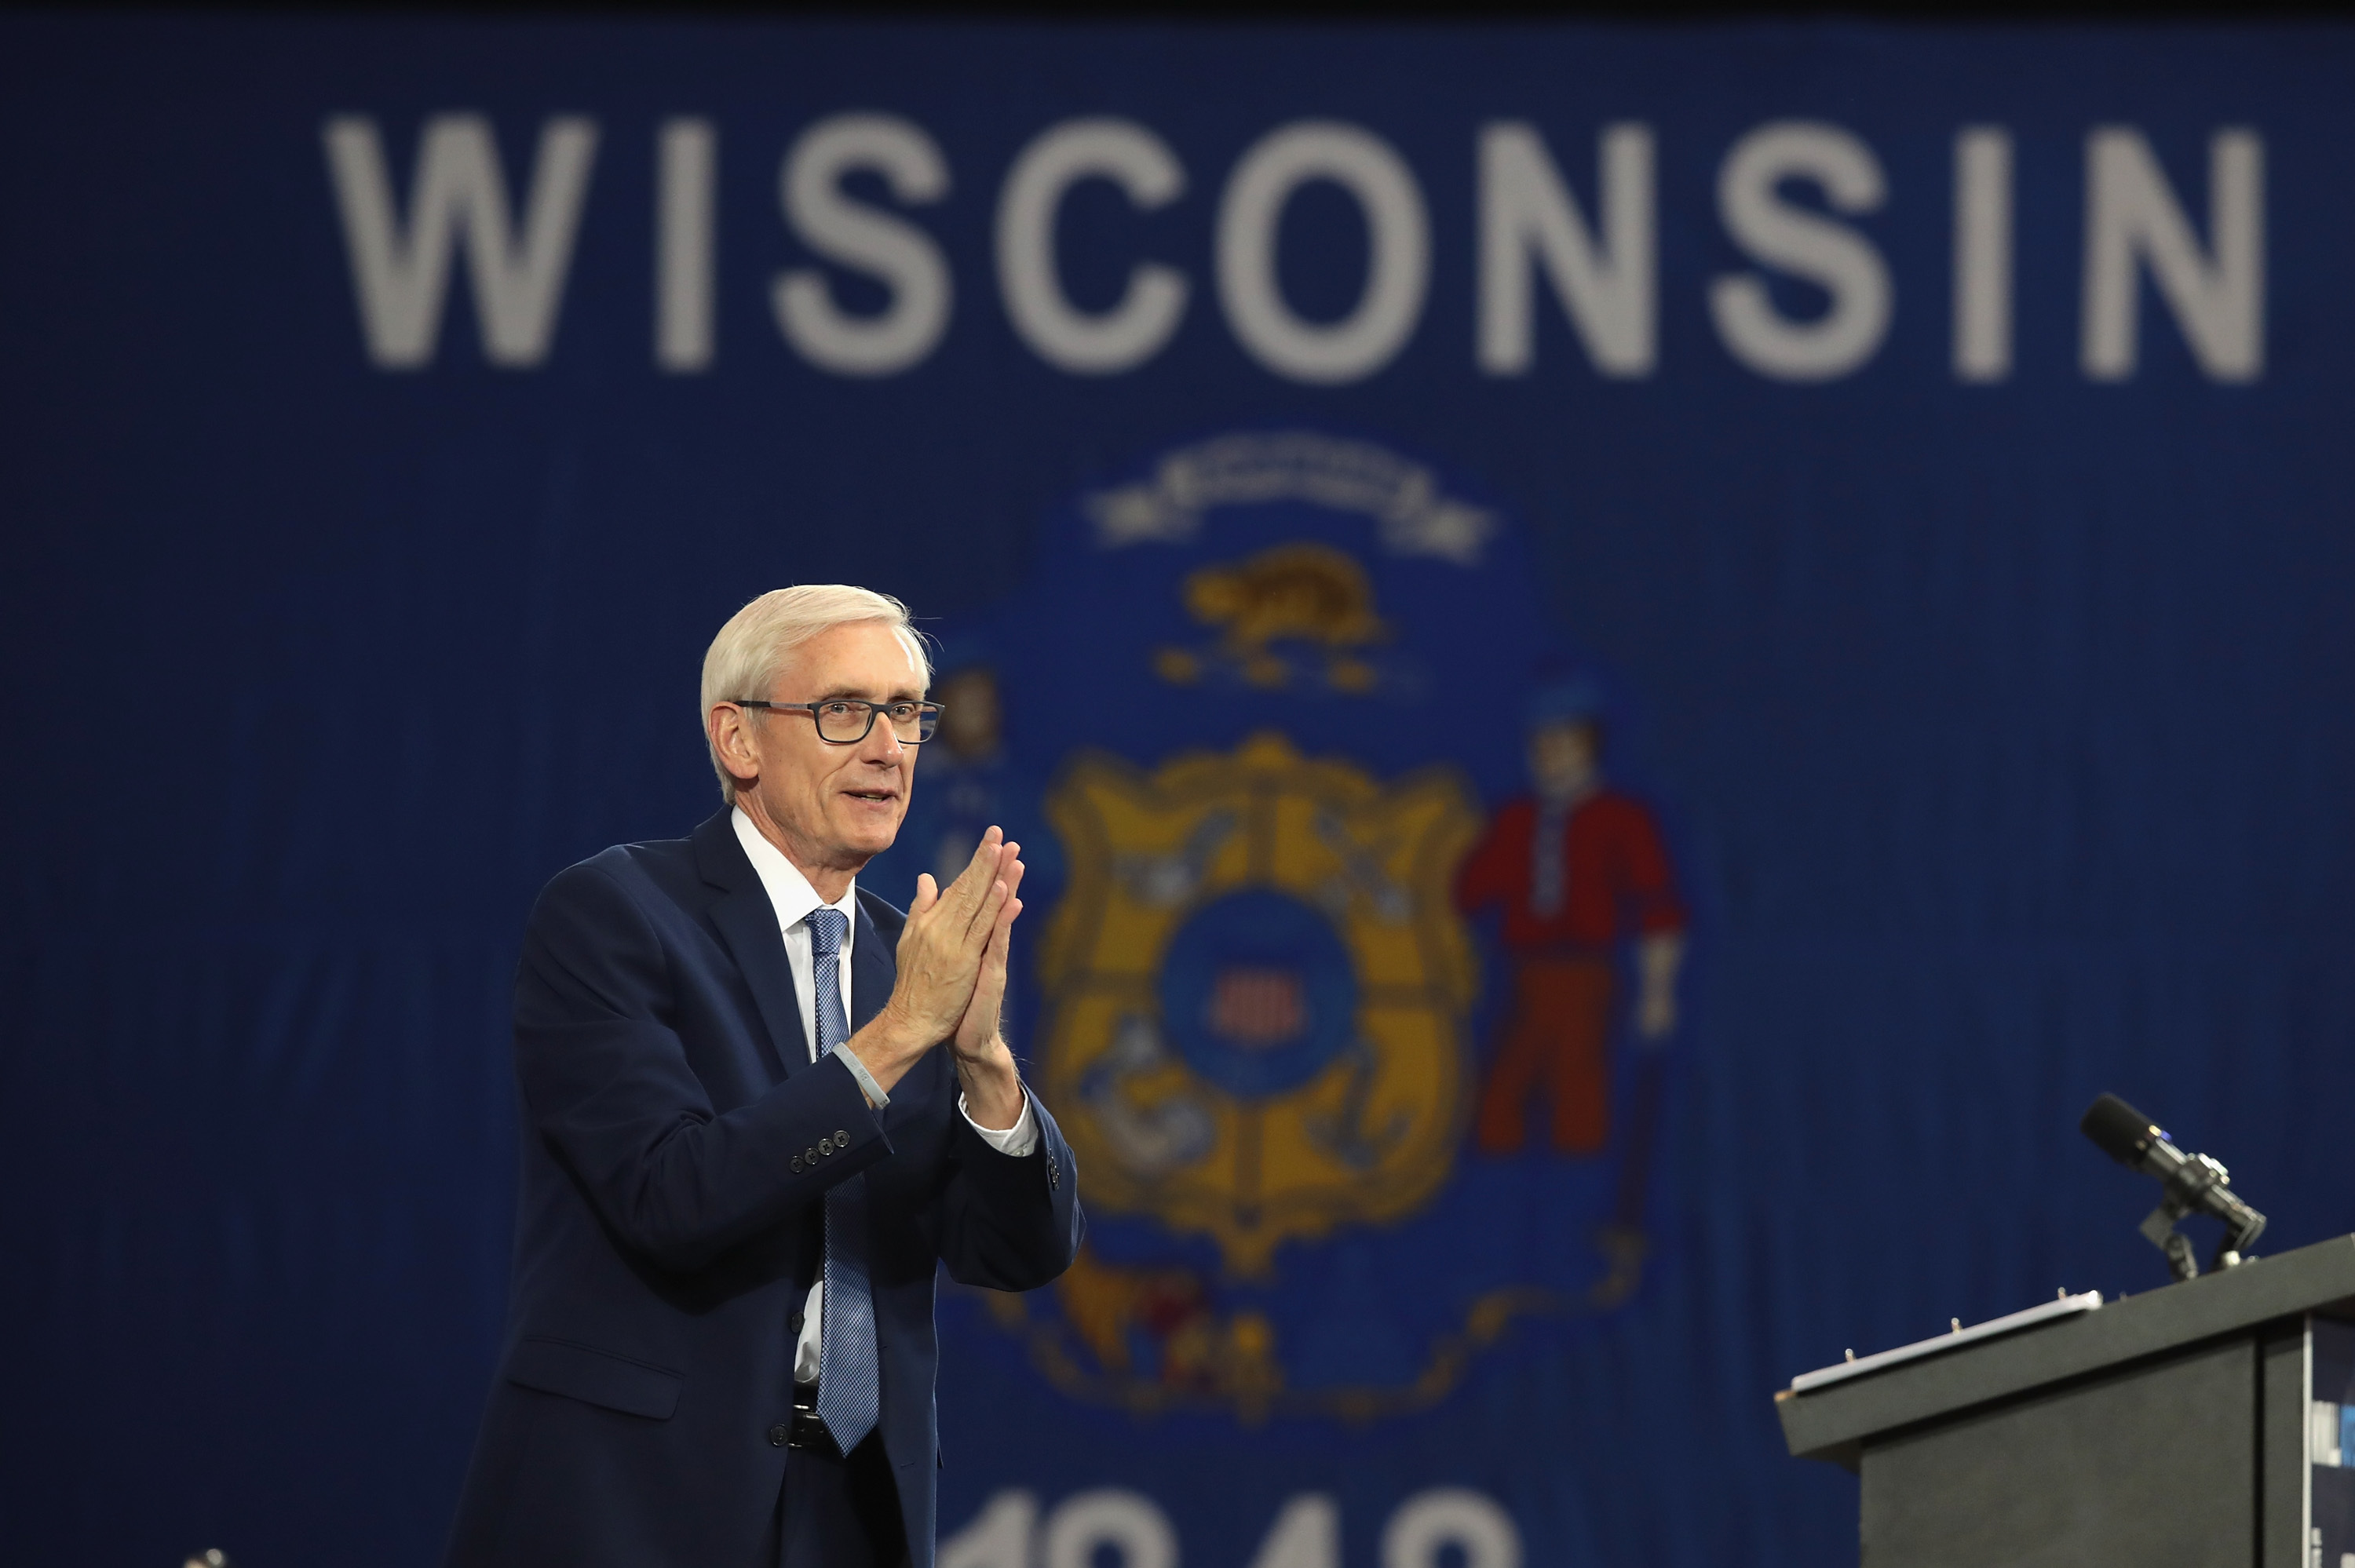 Tony Evers Democratic candidate for governor of Wisconsin speaks at a rally in Milwaukee. Evers defeated Republican Gov. Scott Walker